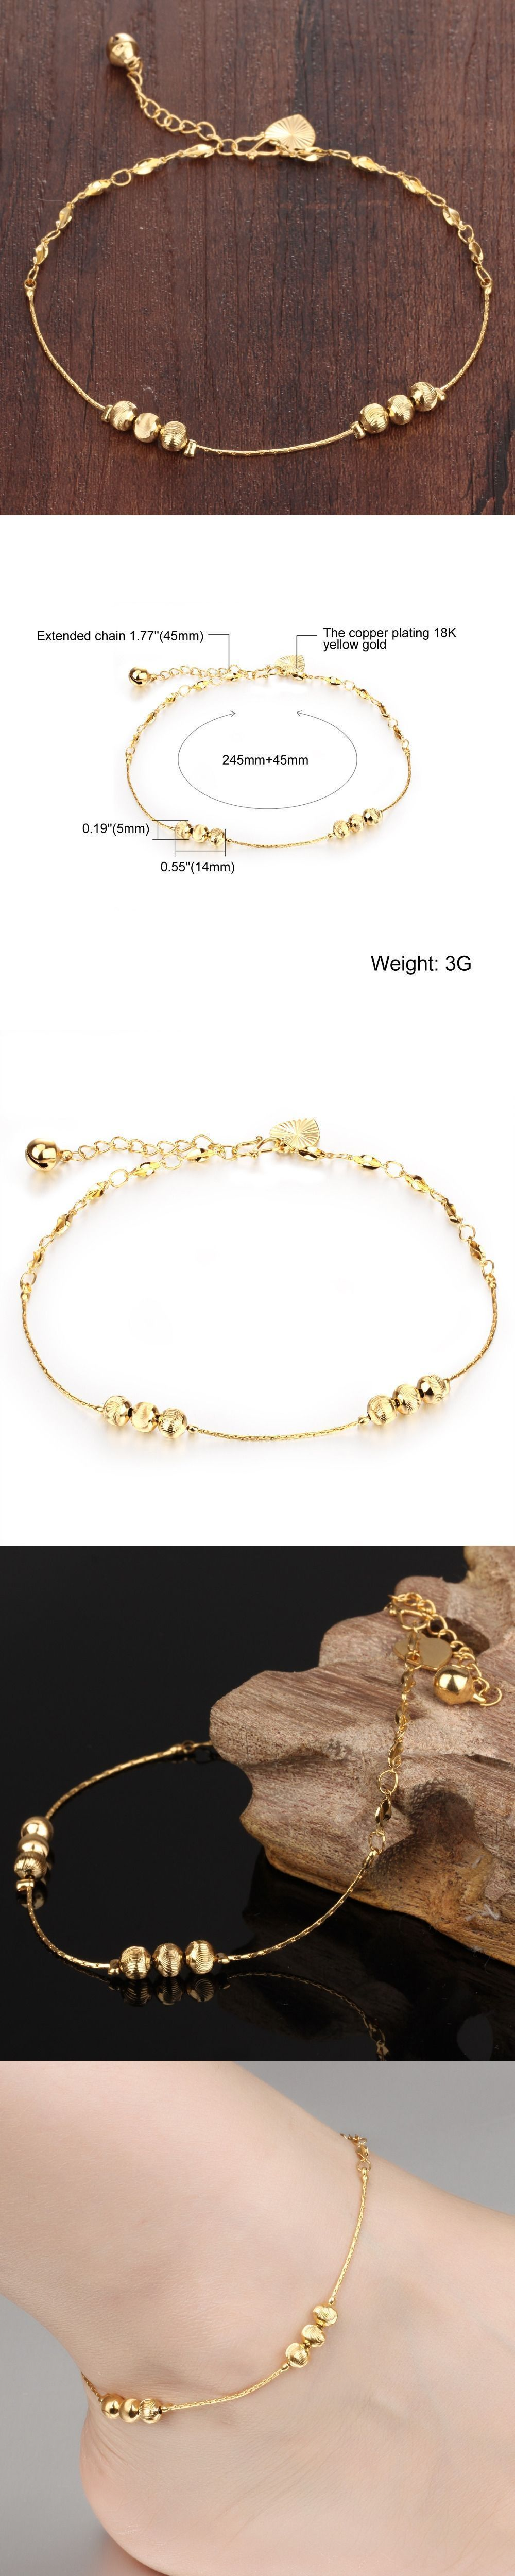 yellow ankle design jewelry jewelers heart open anklet fortunoff bracelet gold long island